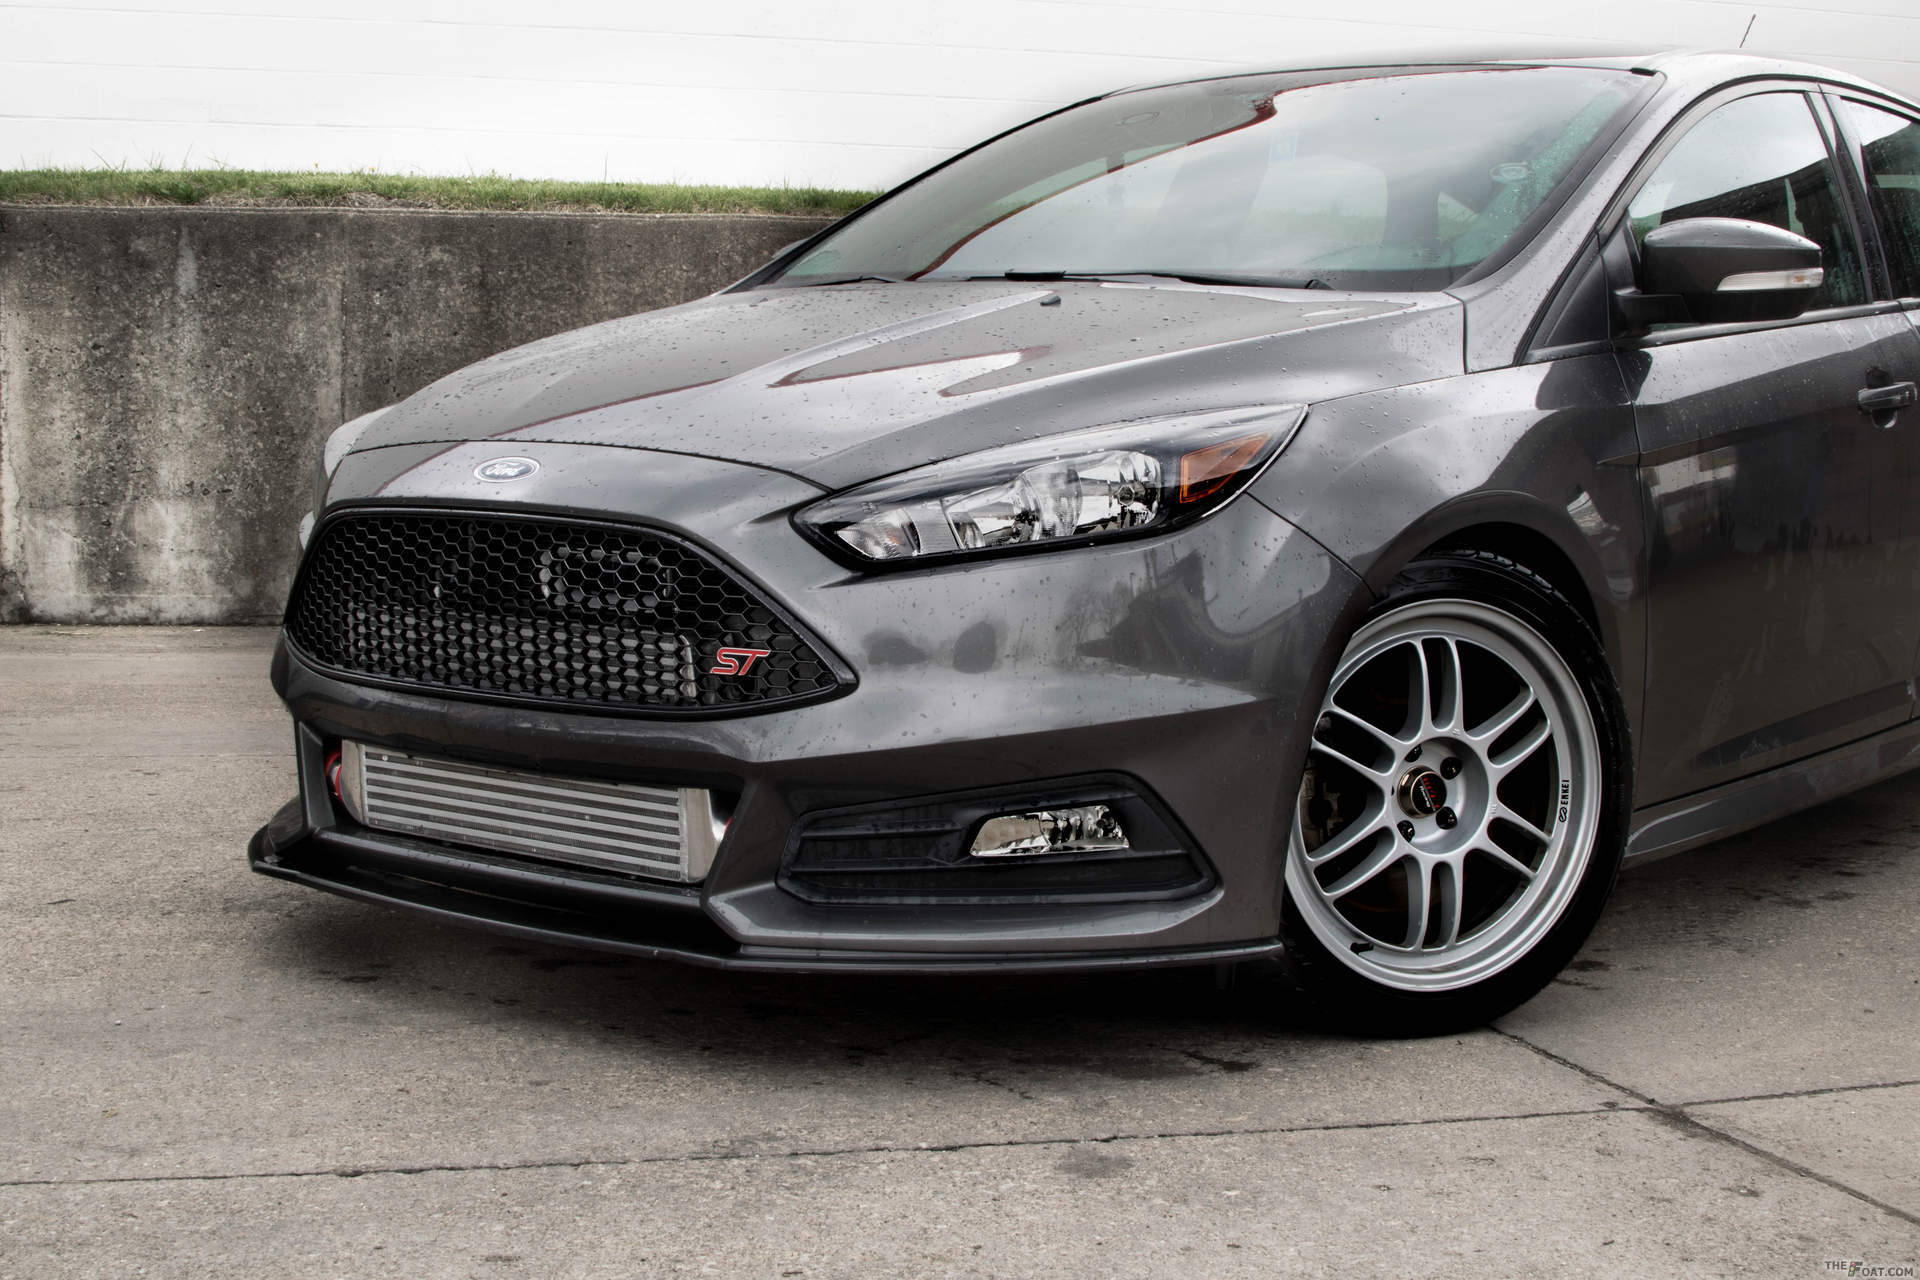 2015 Ford Focus ST FoST road race build!!